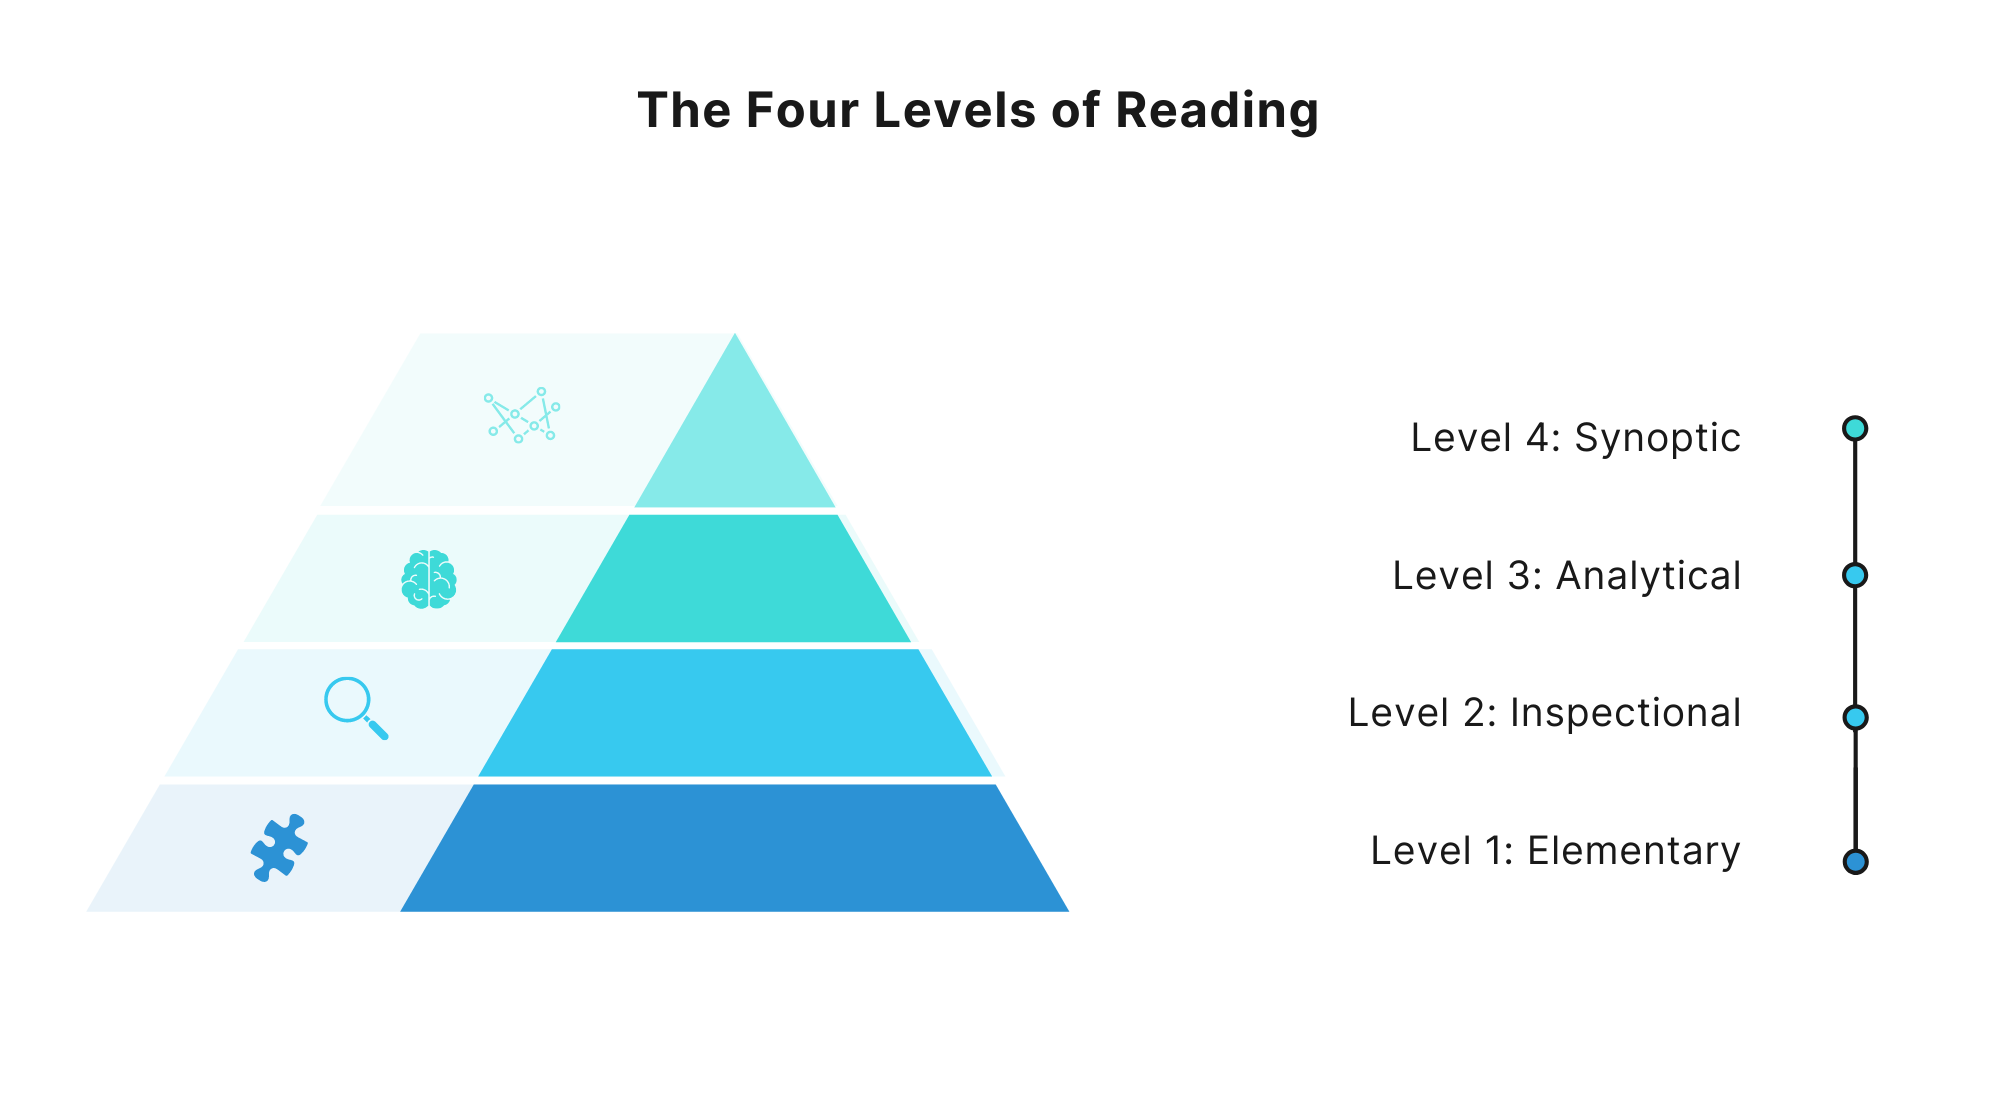 The Four Levels of Reading